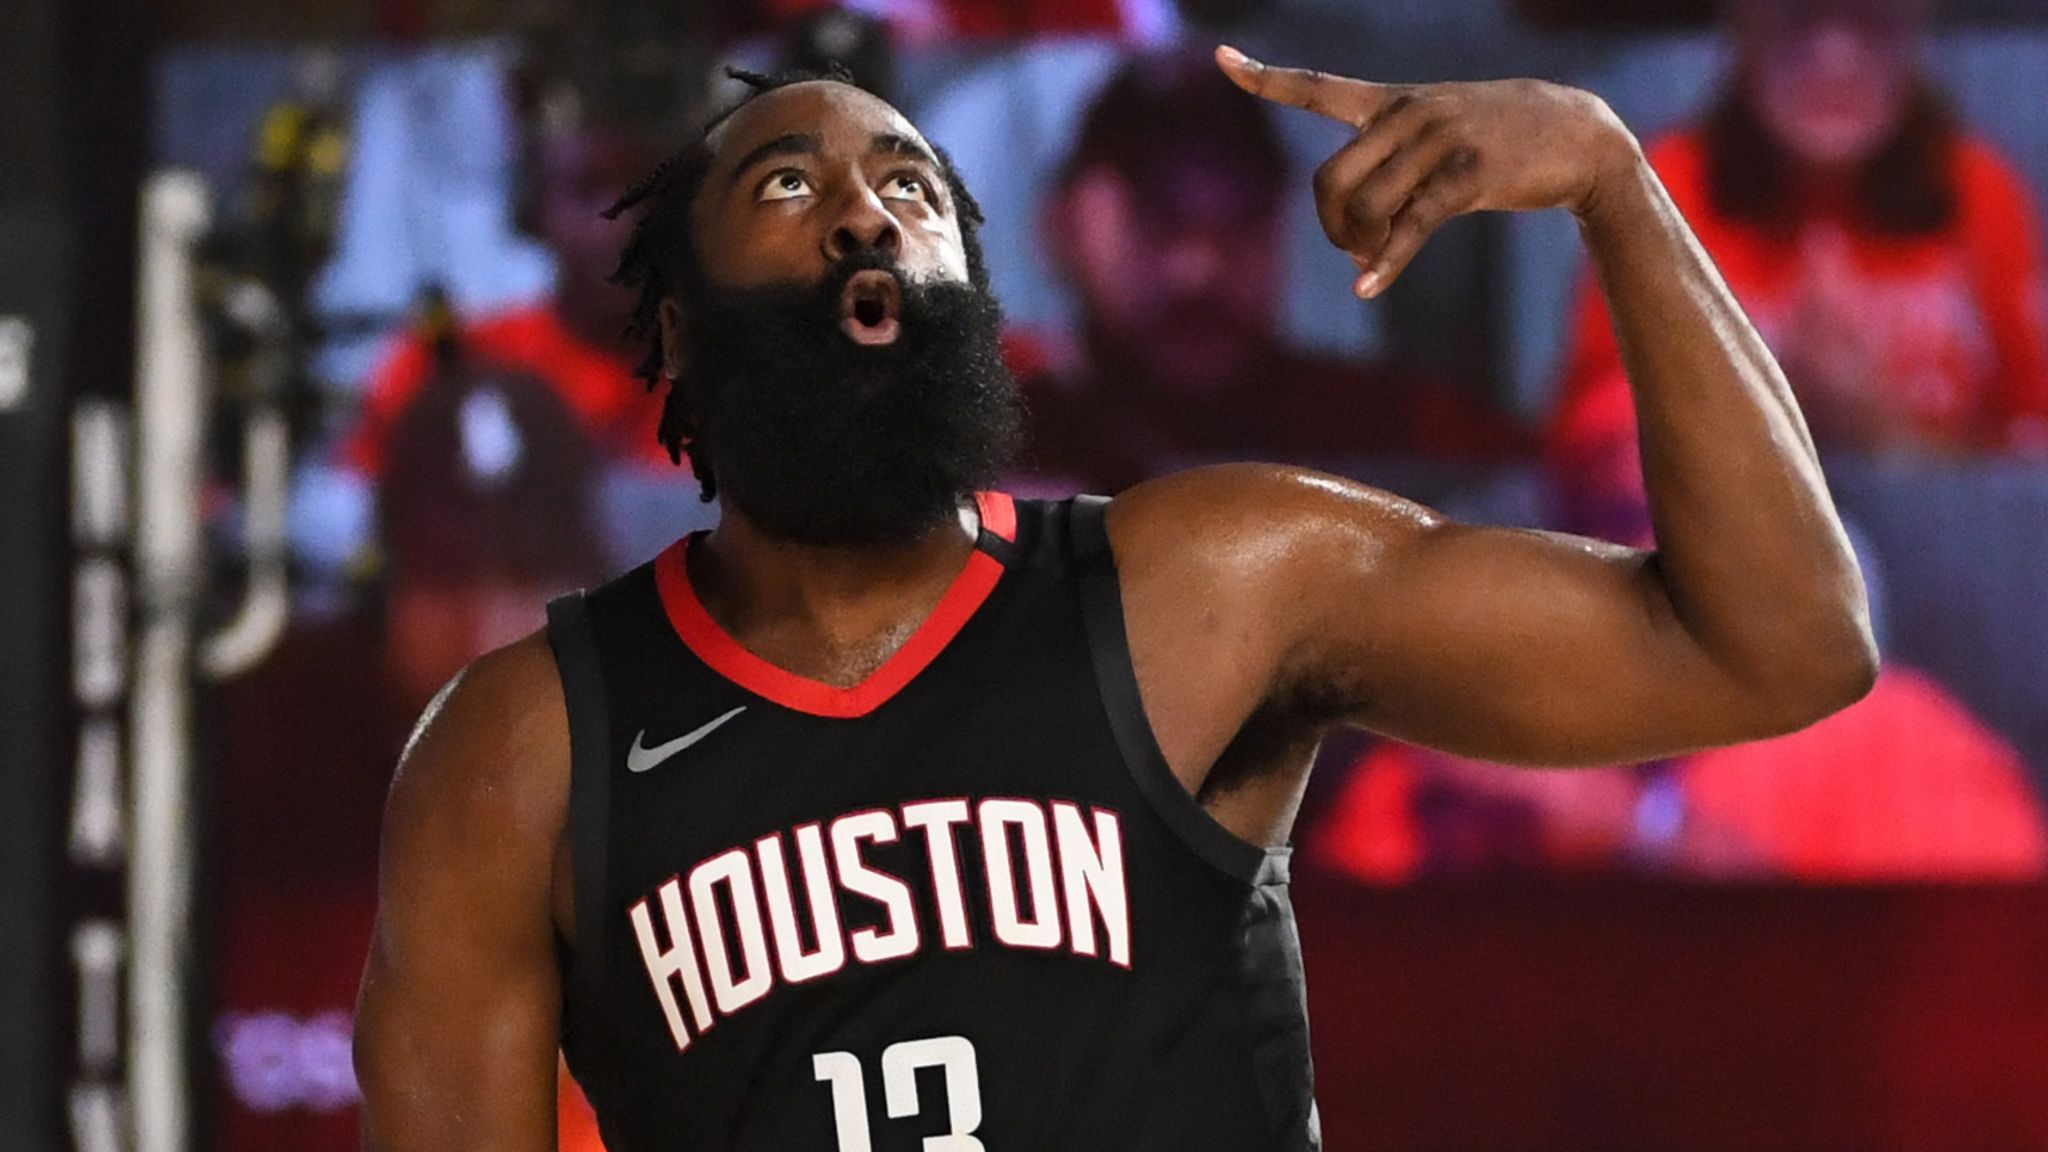 James Harden celebrates a three-pointer during Houston's Game 1 win over Oklahoma City